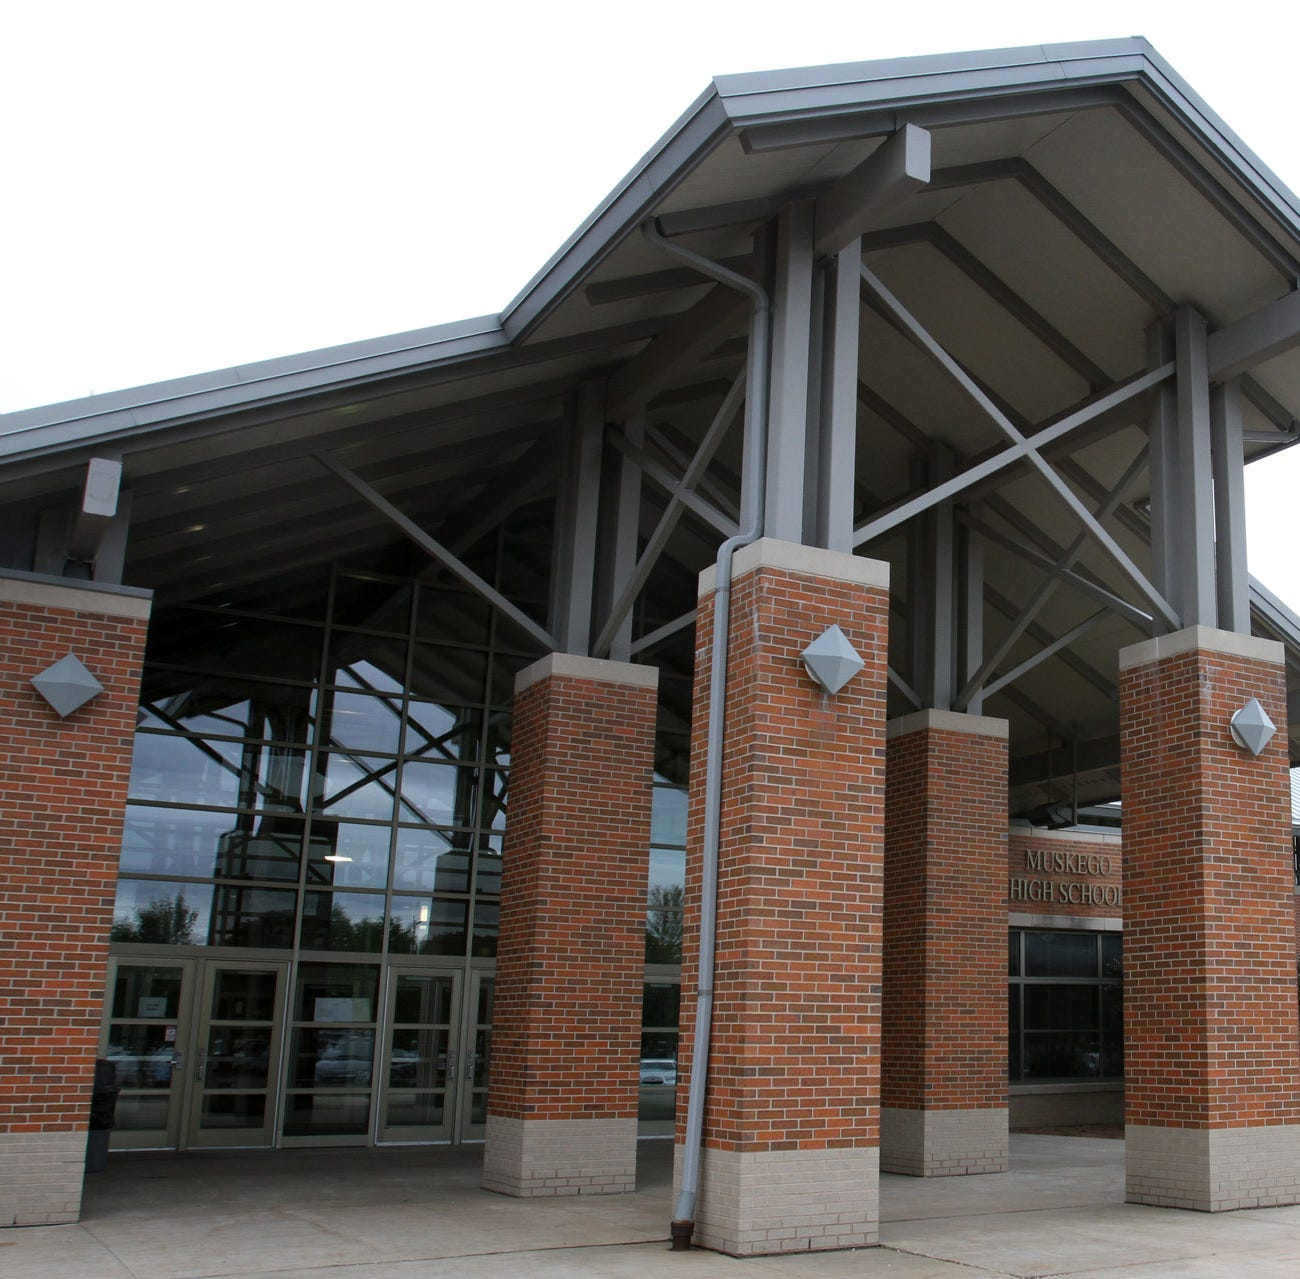 Classes still on at Muskego High School despite social media shooting threat